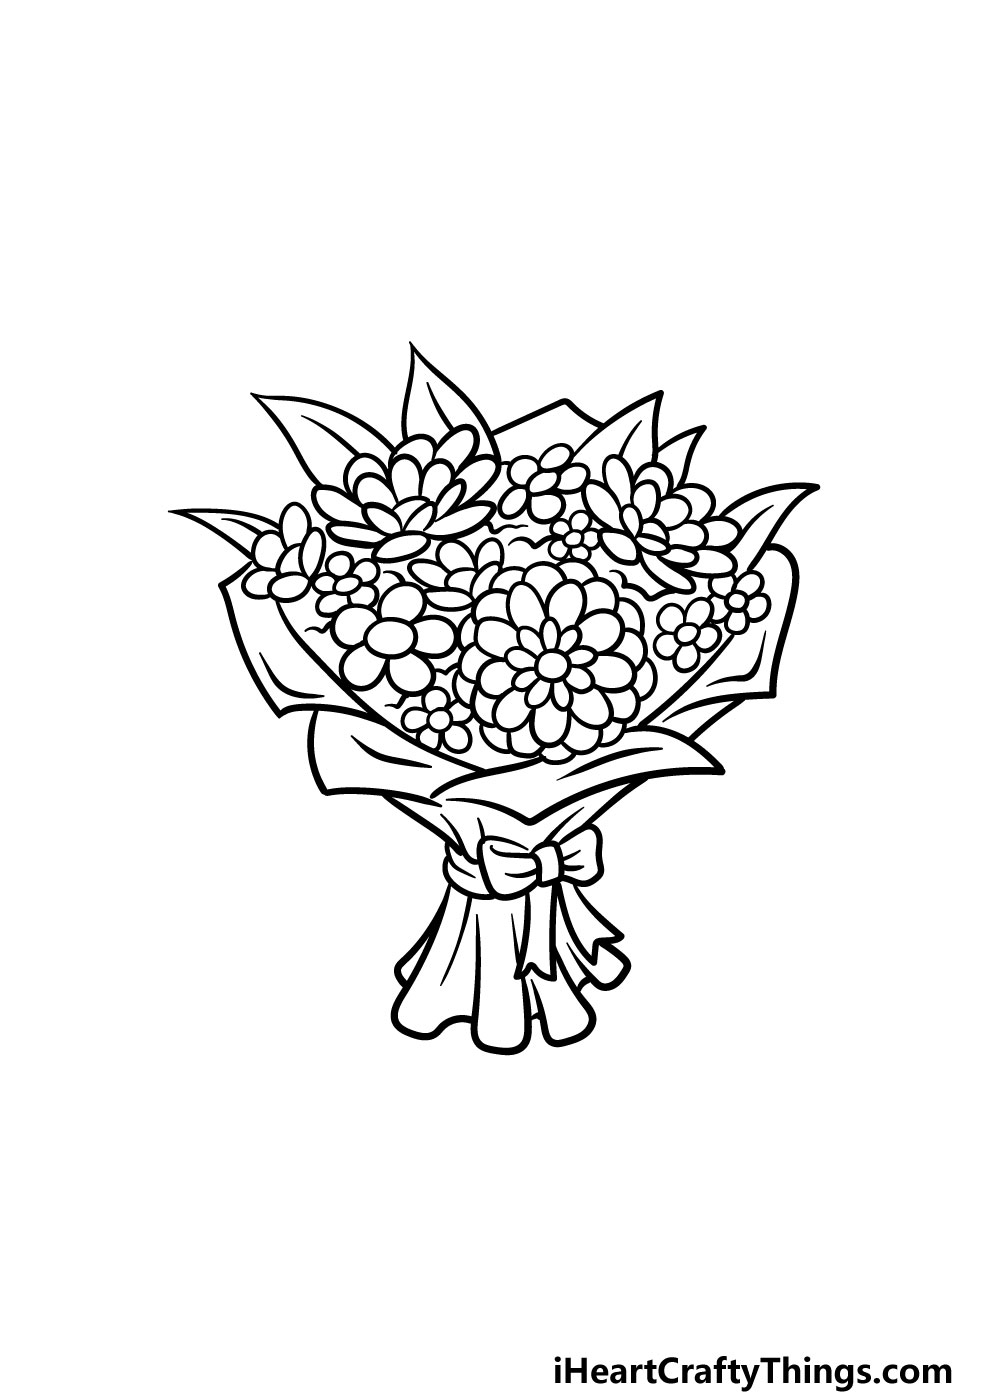 drawing a bouquet of flowers step 8